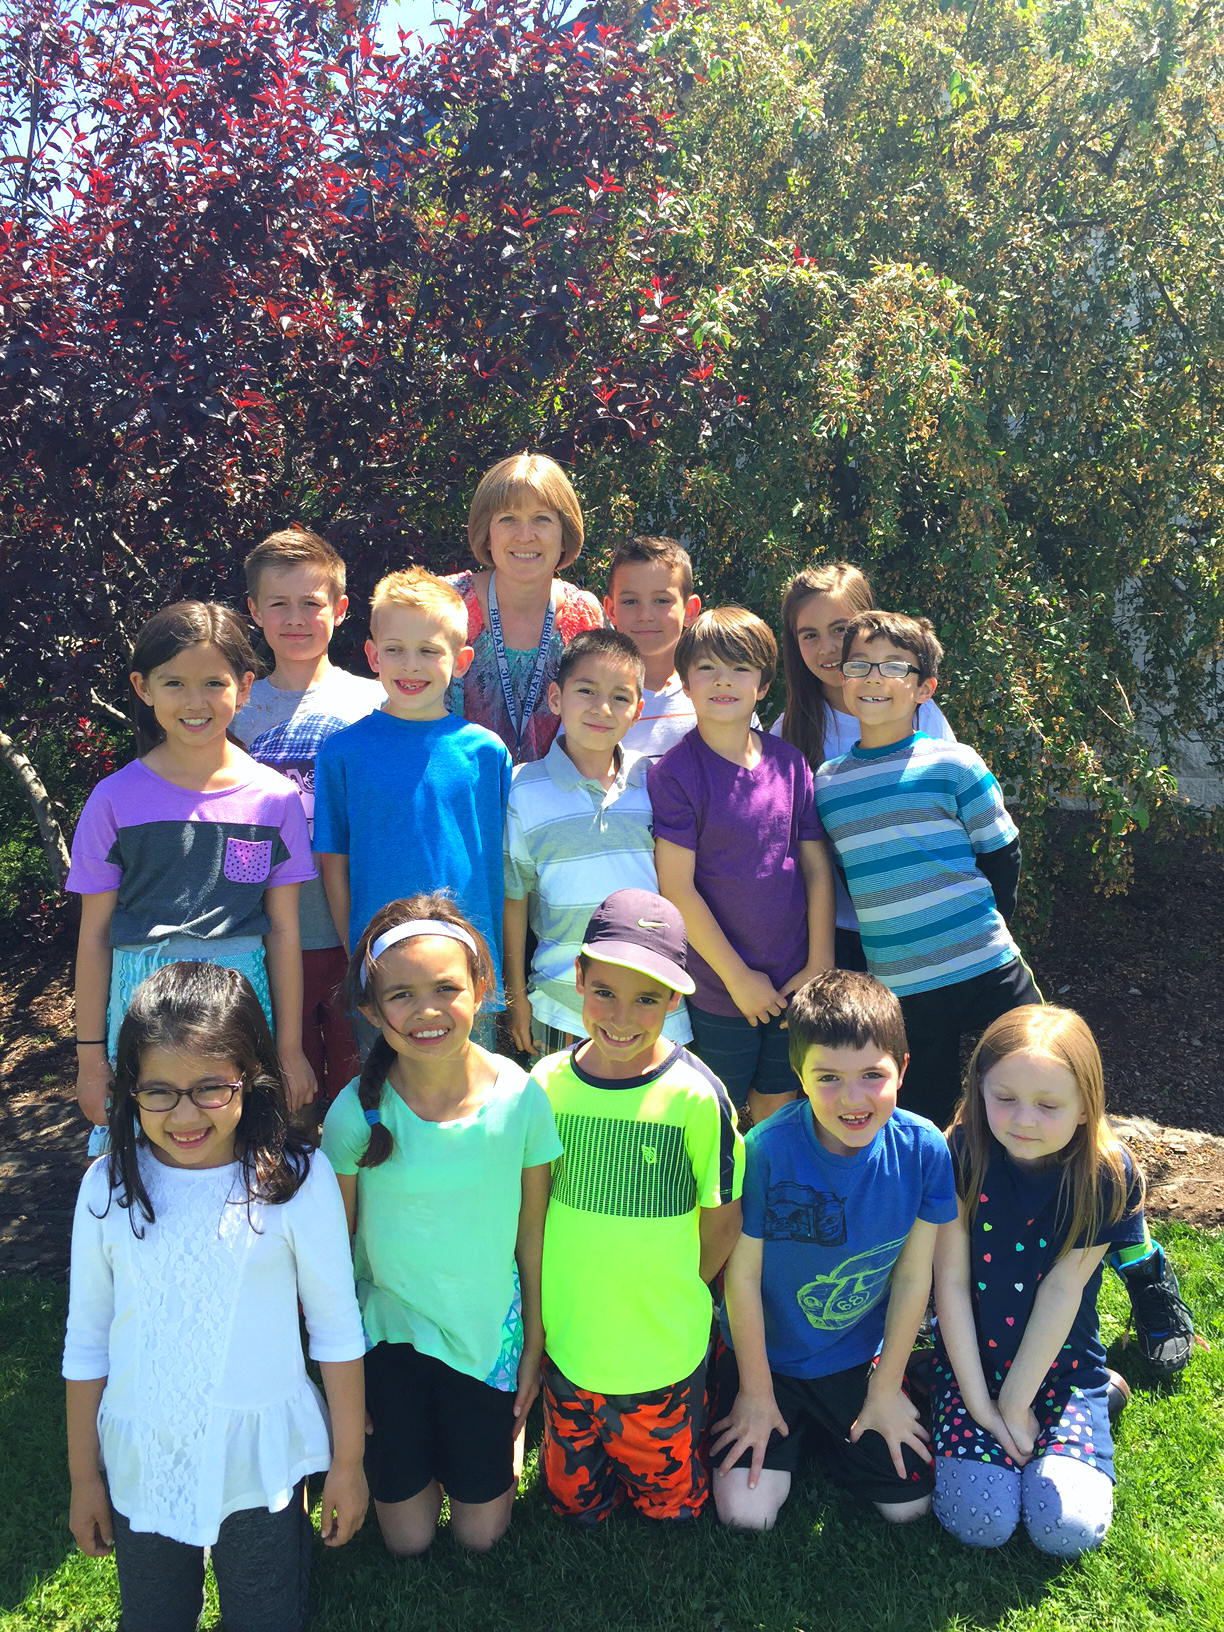 Tonya Wessman (back, center) with her first and second grade class from Rogers Adventist School